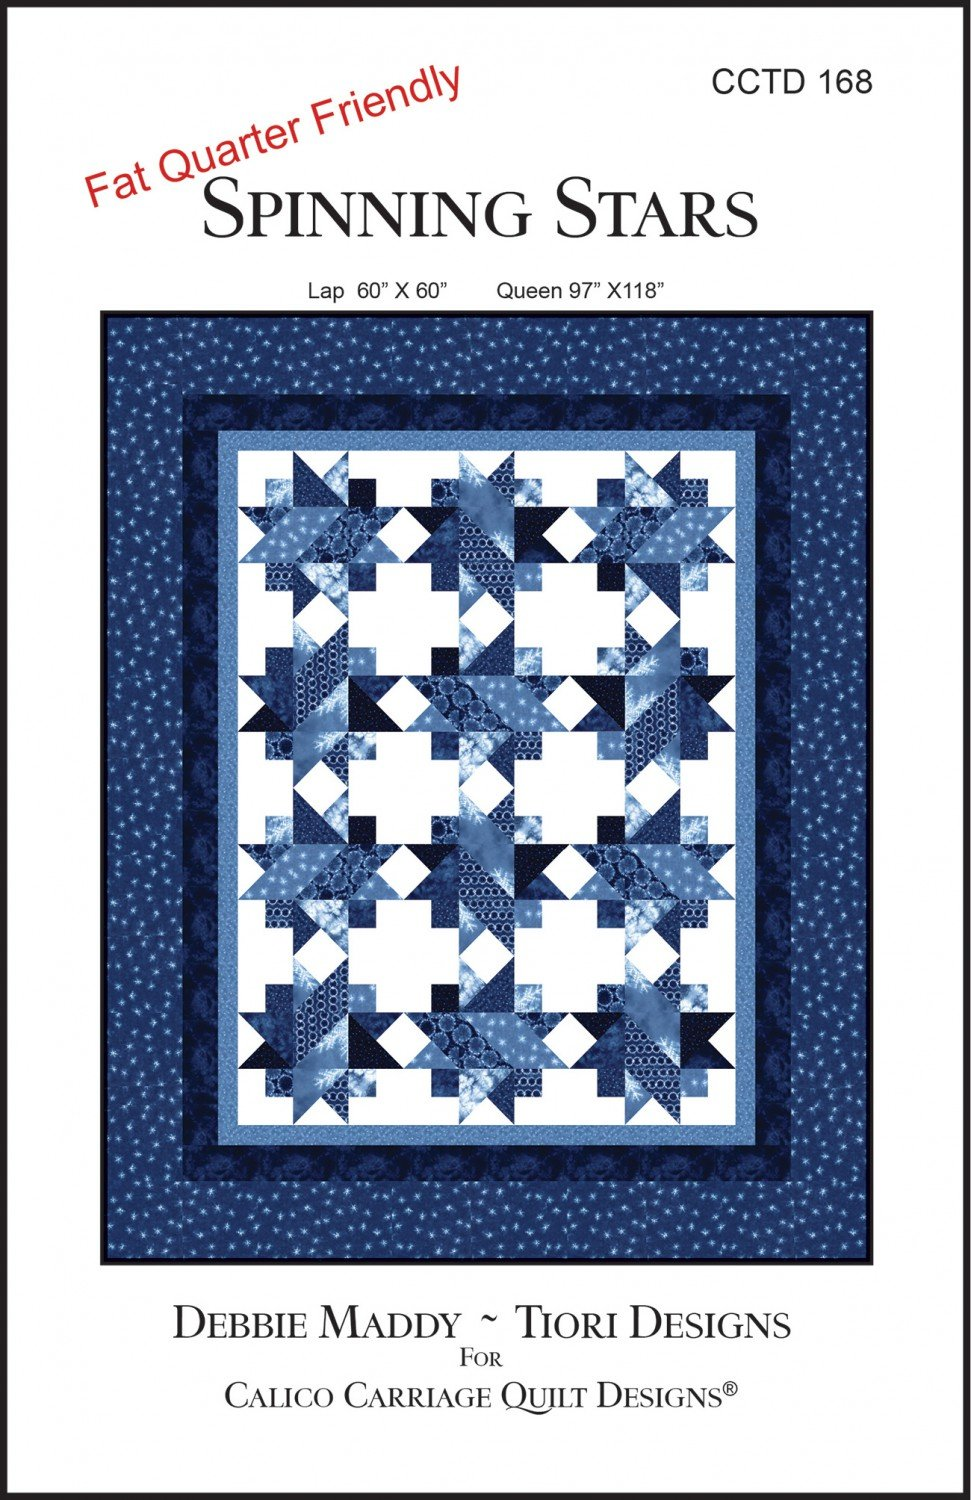 Calico Carriage Quilt Designs - Spinning Stars Pattern CCTD 168